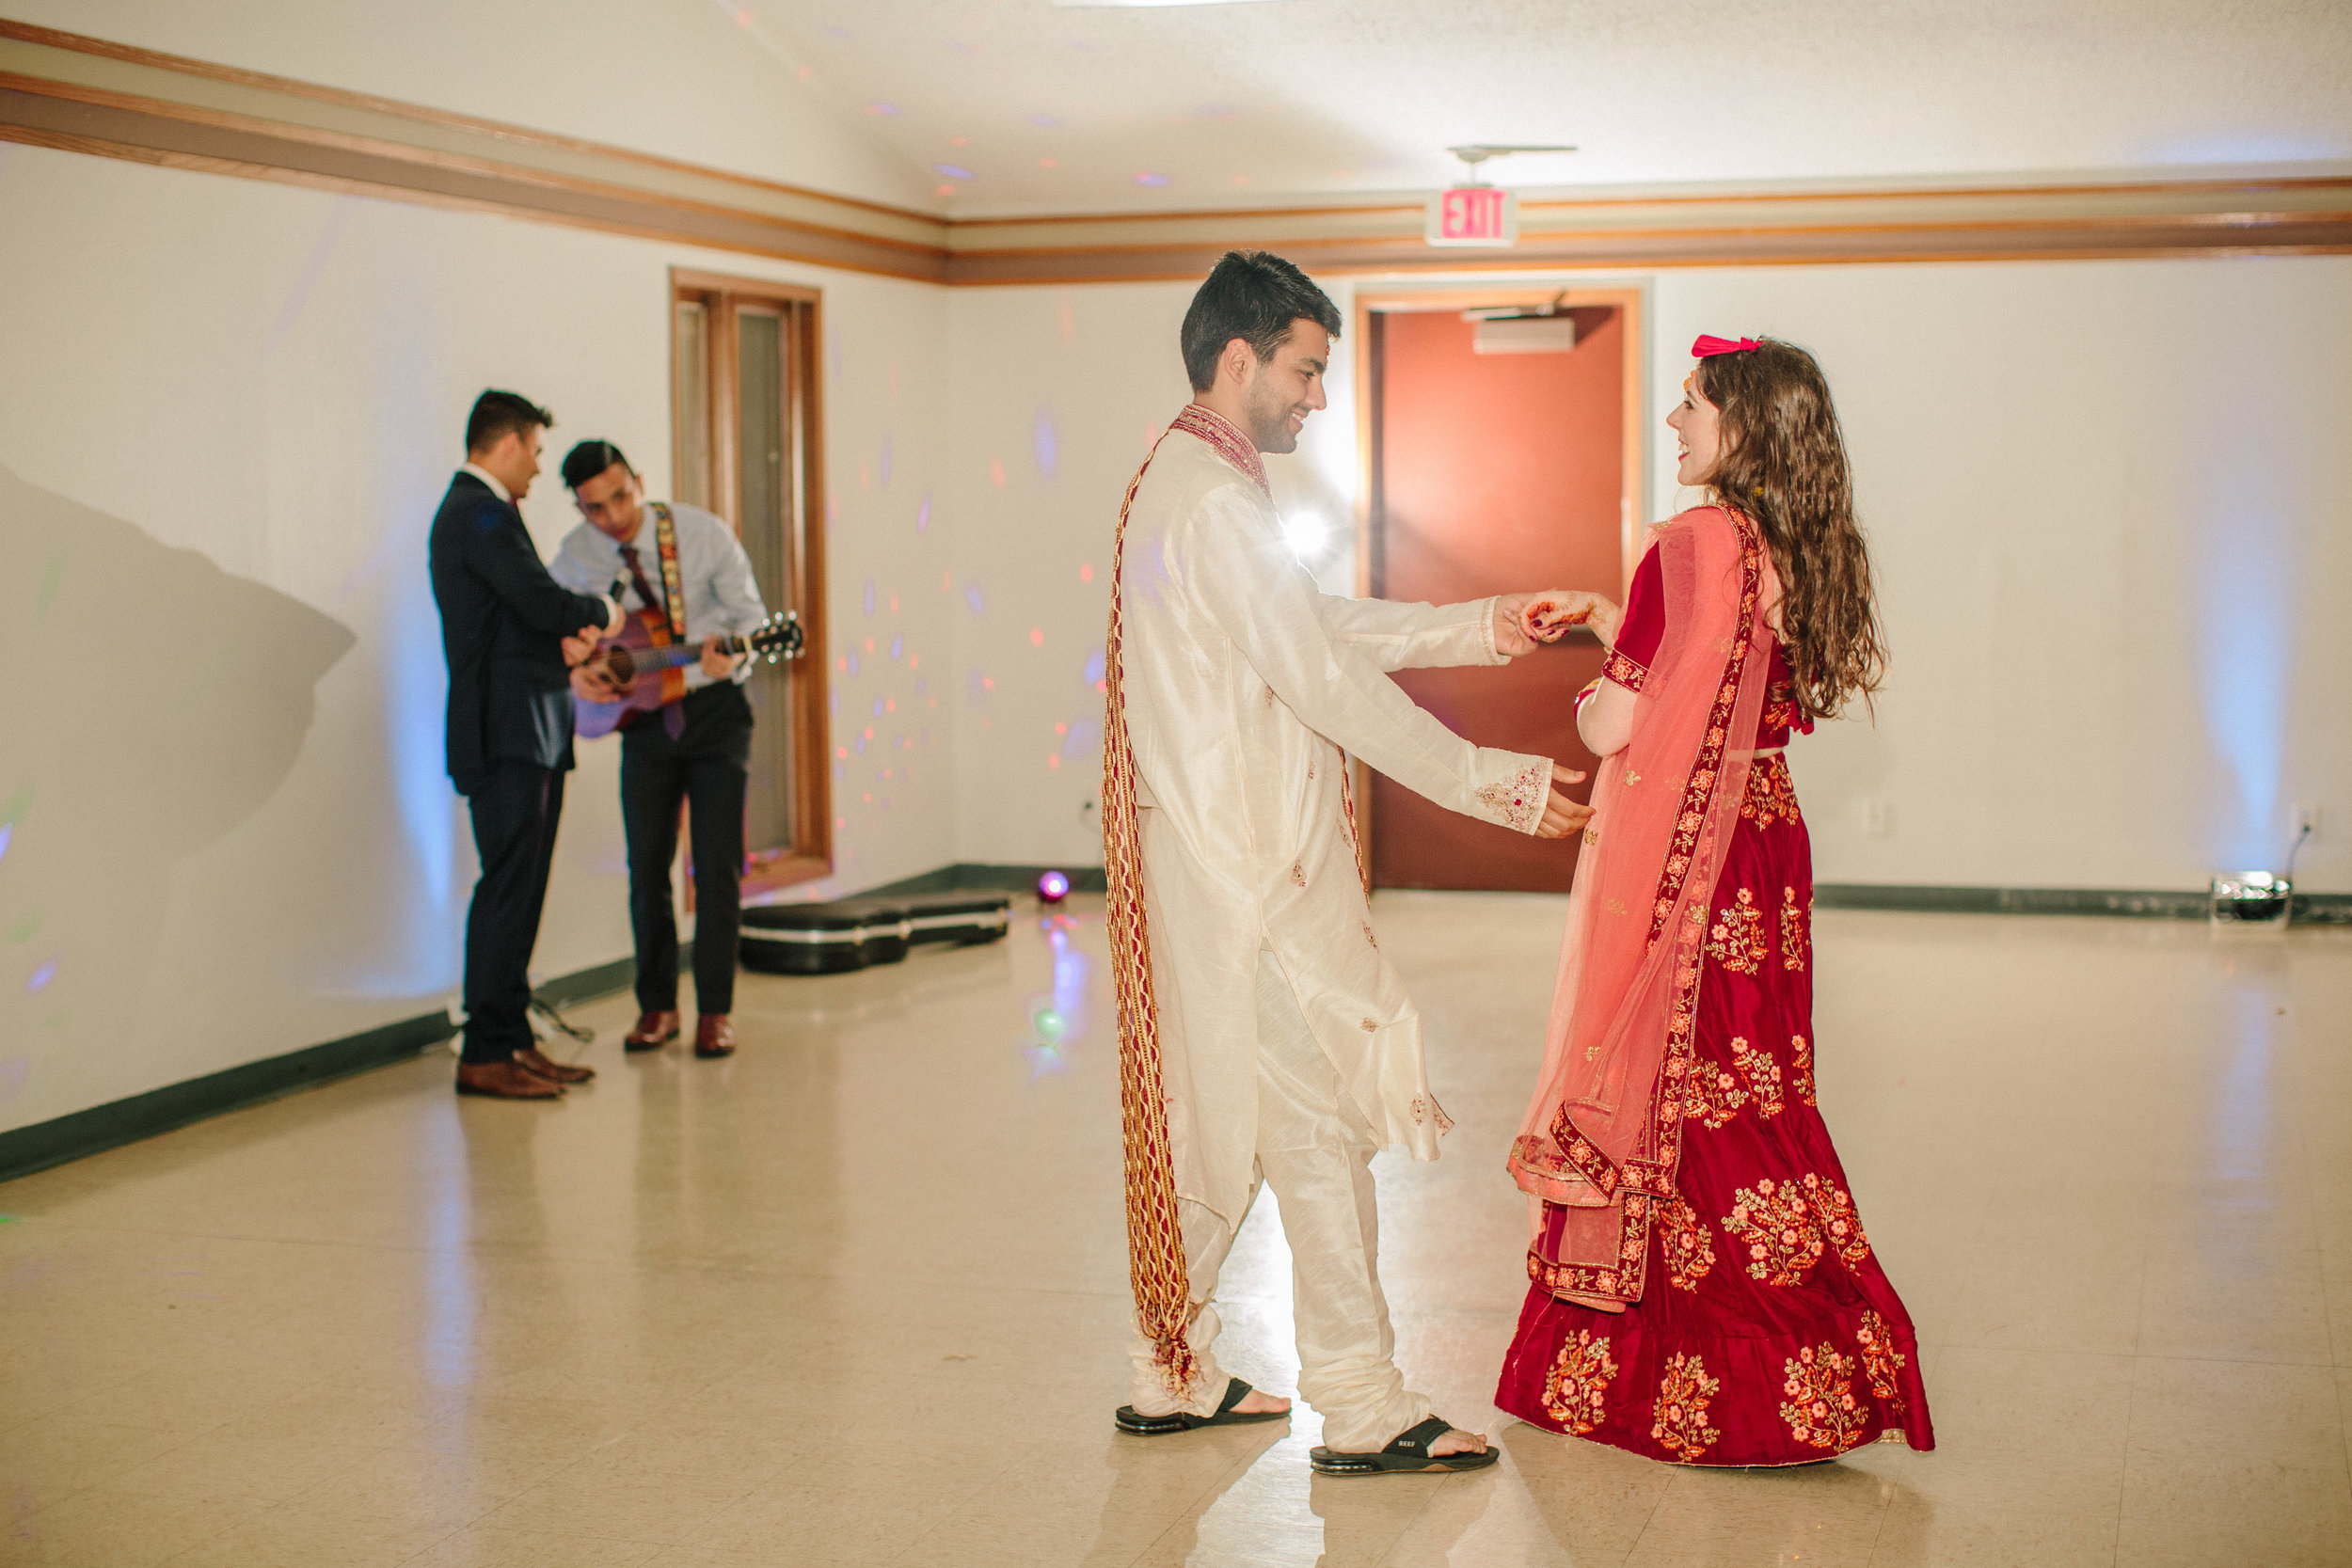 Indian dancing at wedding reception photos in Des Moines Iowa